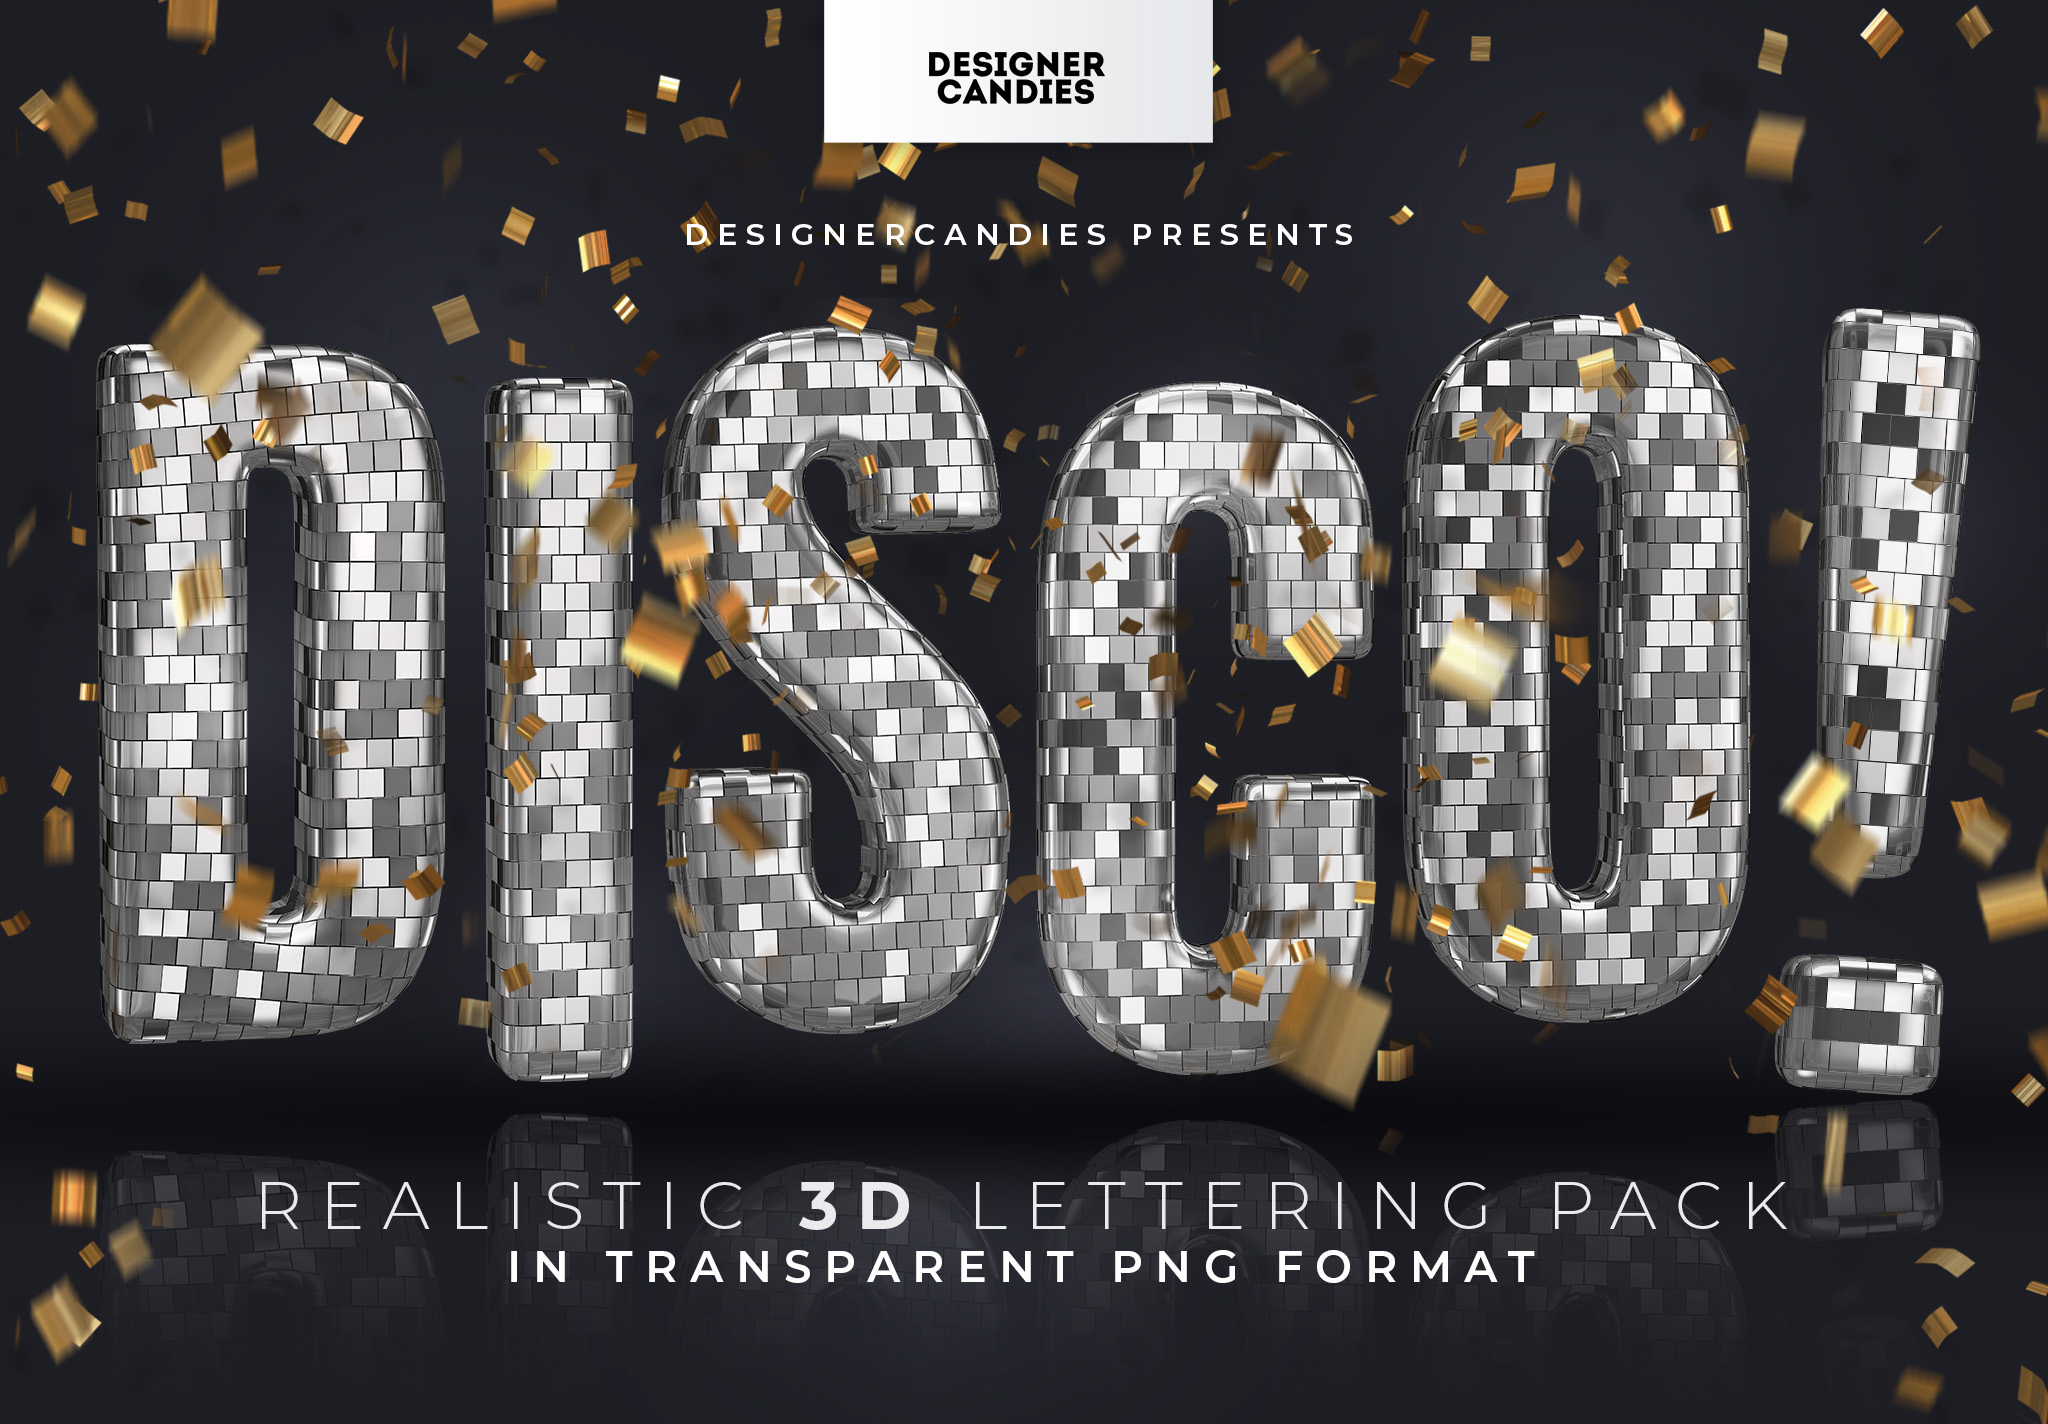 Disco Ball 3D Lettering Pack